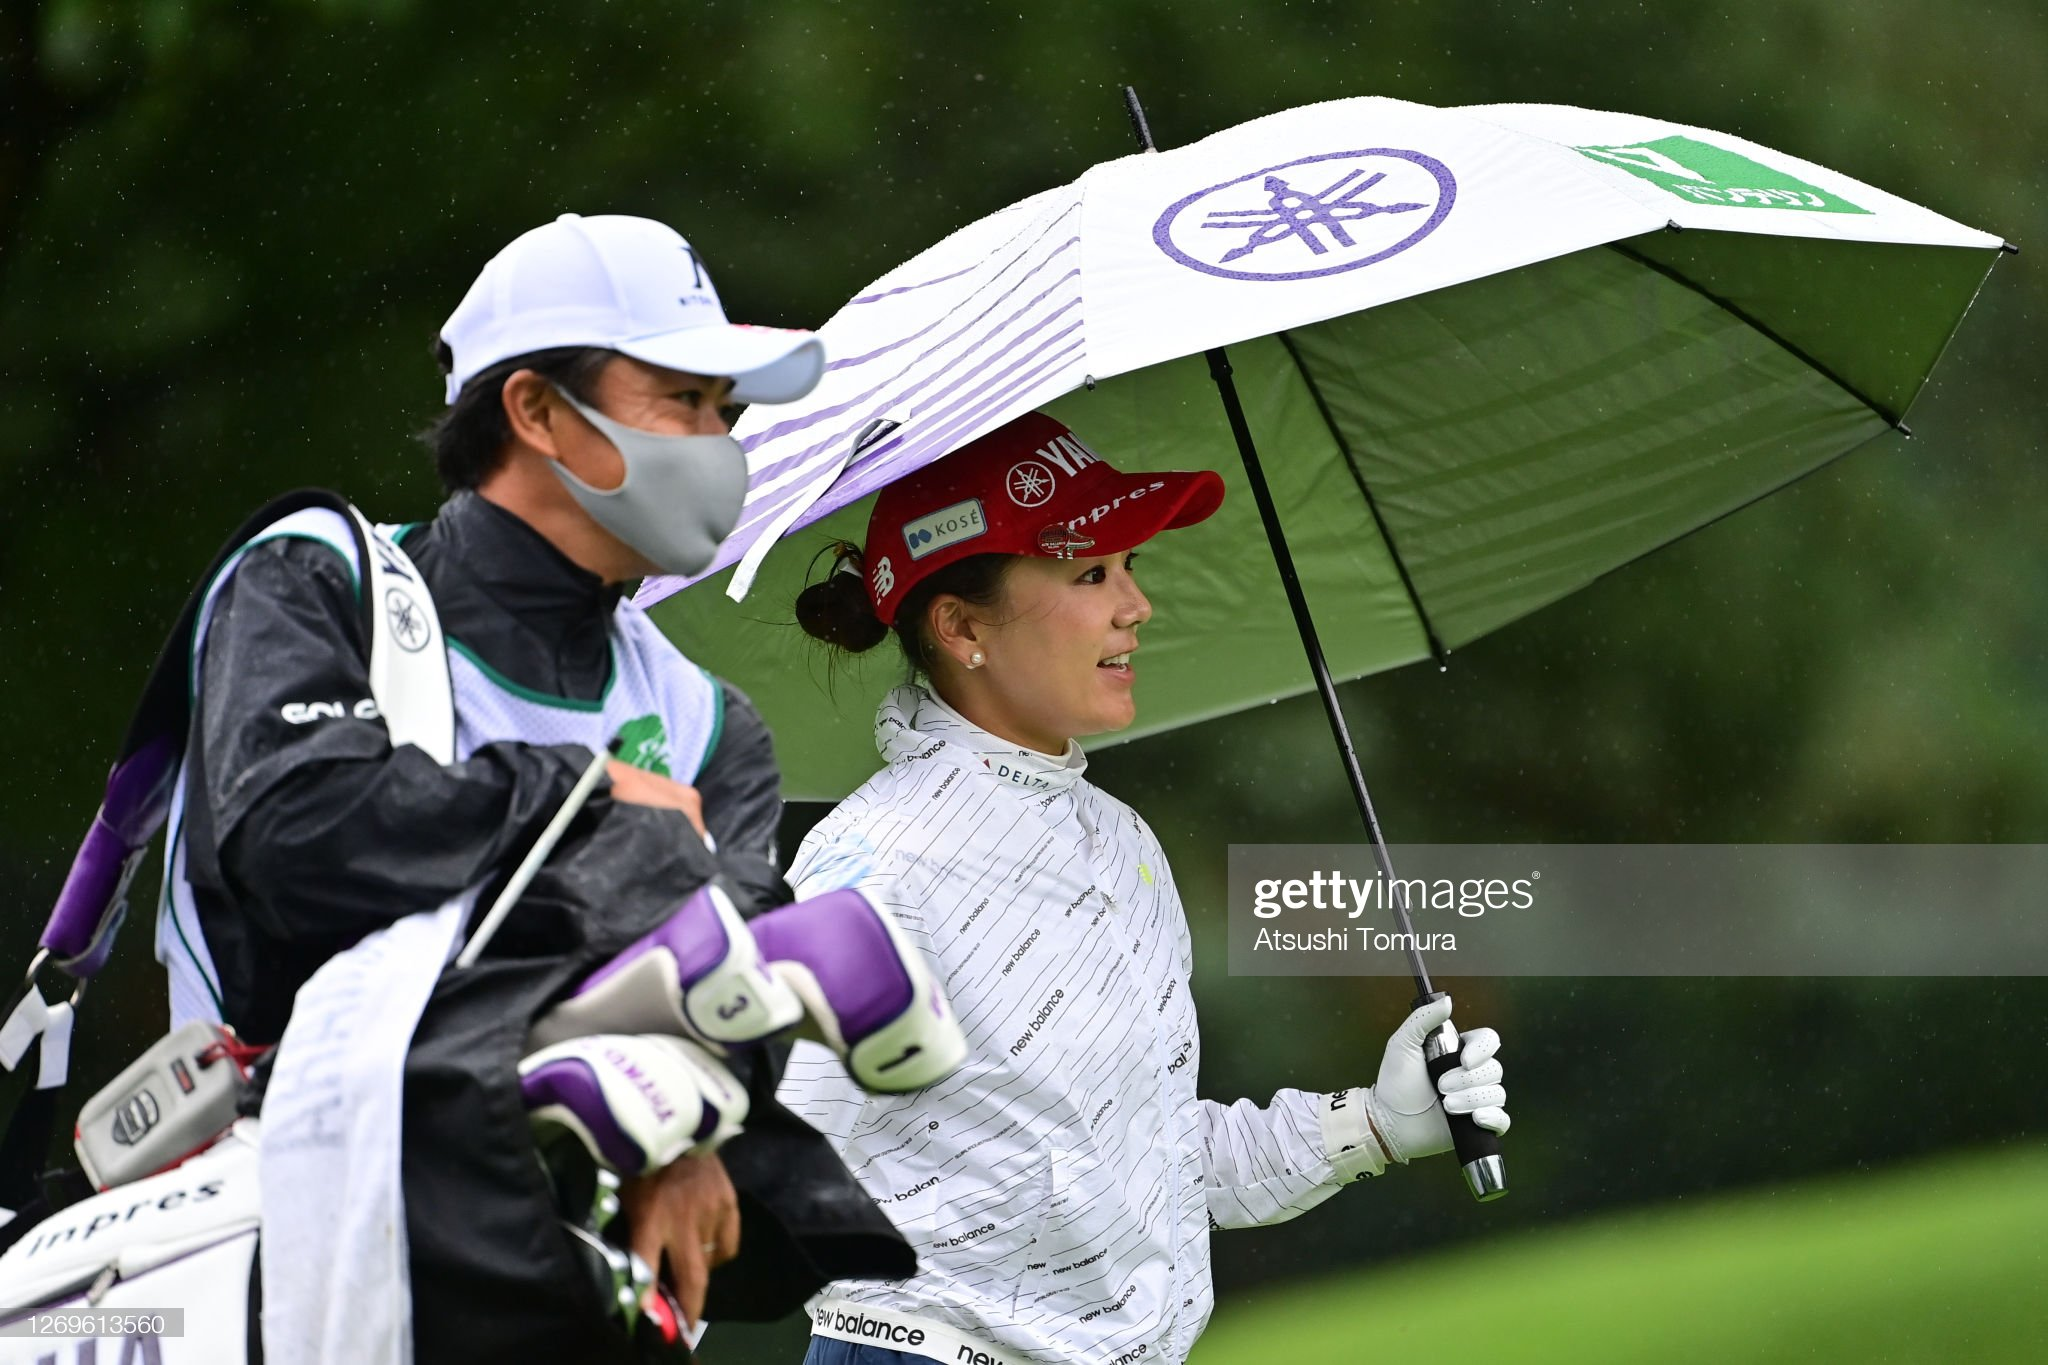 https://media.gettyimages.com/photos/chie-arimura-of-japan-walks-with-her-caddie-on-the-6th-hole-during-picture-id1269613560?s=2048x2048